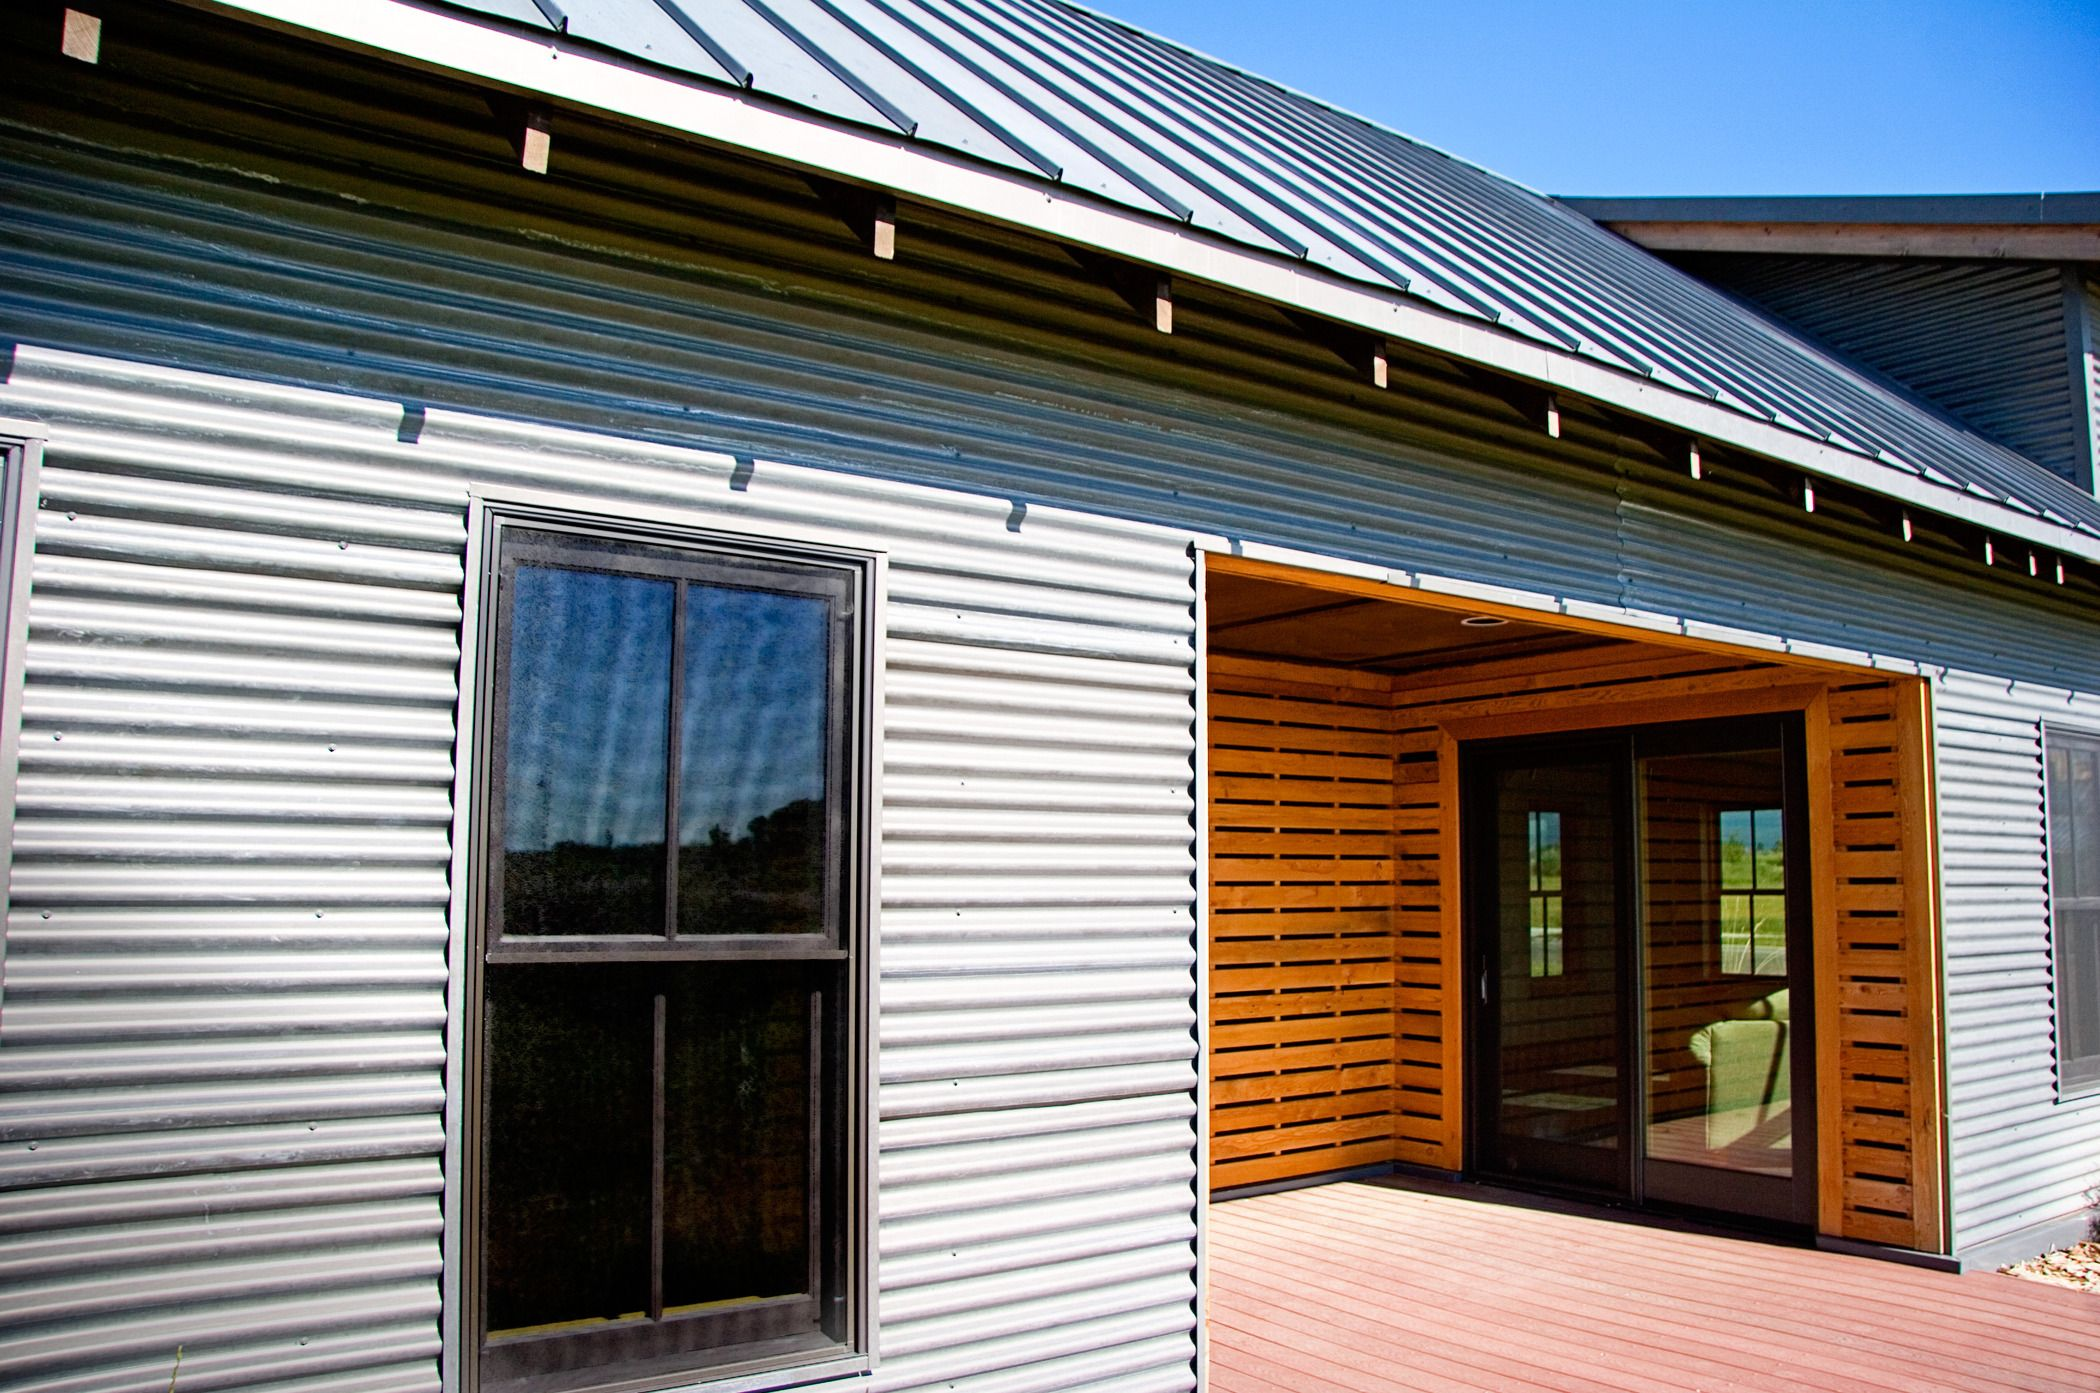 Bonderized Siding And Roofing Houses Metal Roof Metal